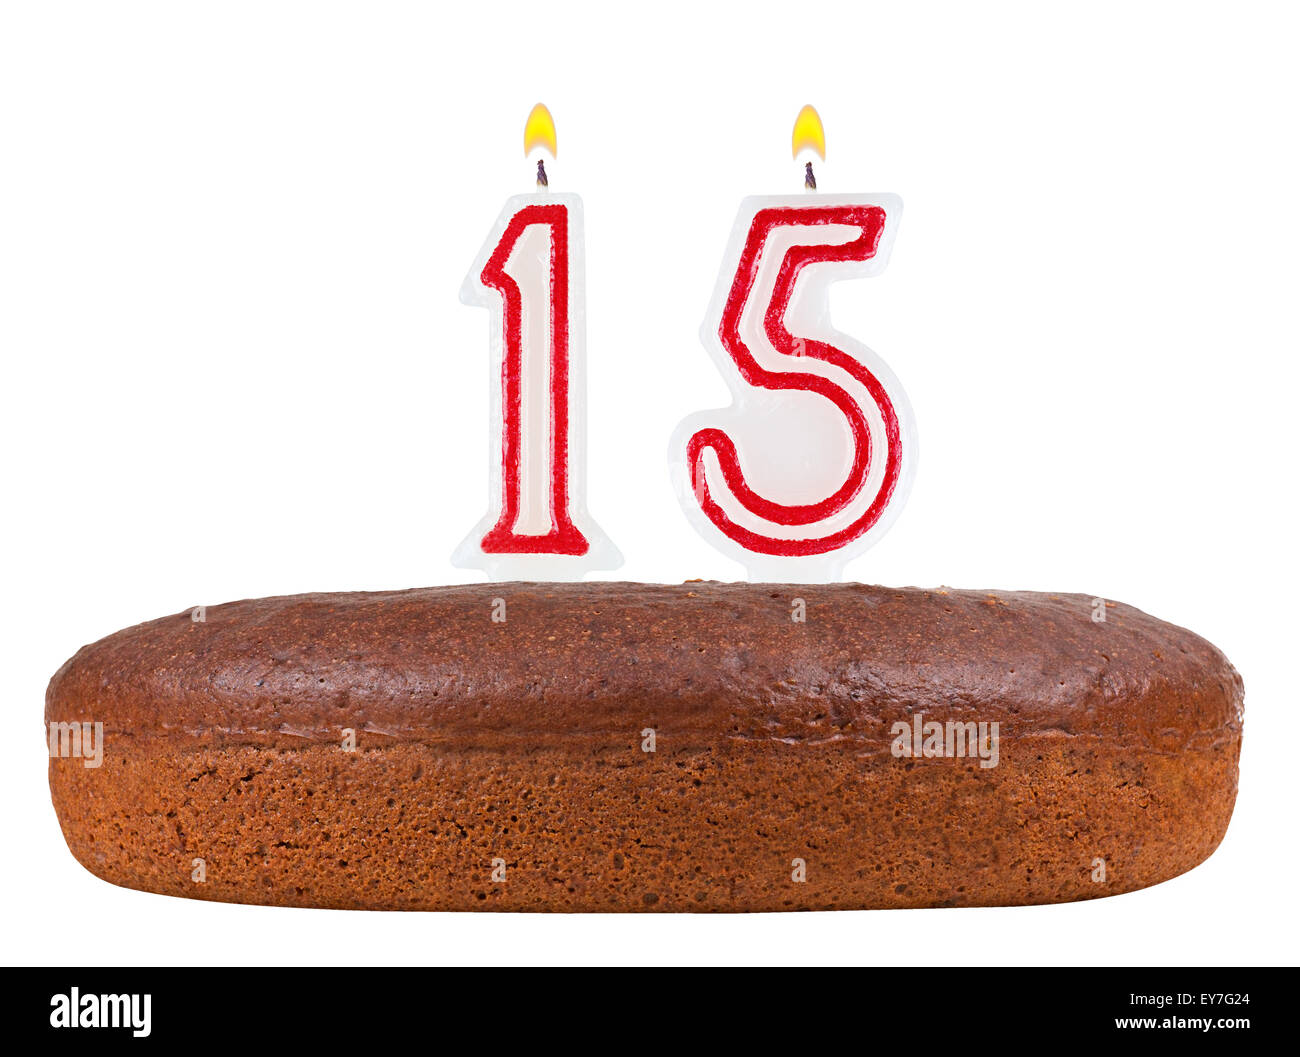 Birthday Cake With Candles Number 15 Isolated On White Background